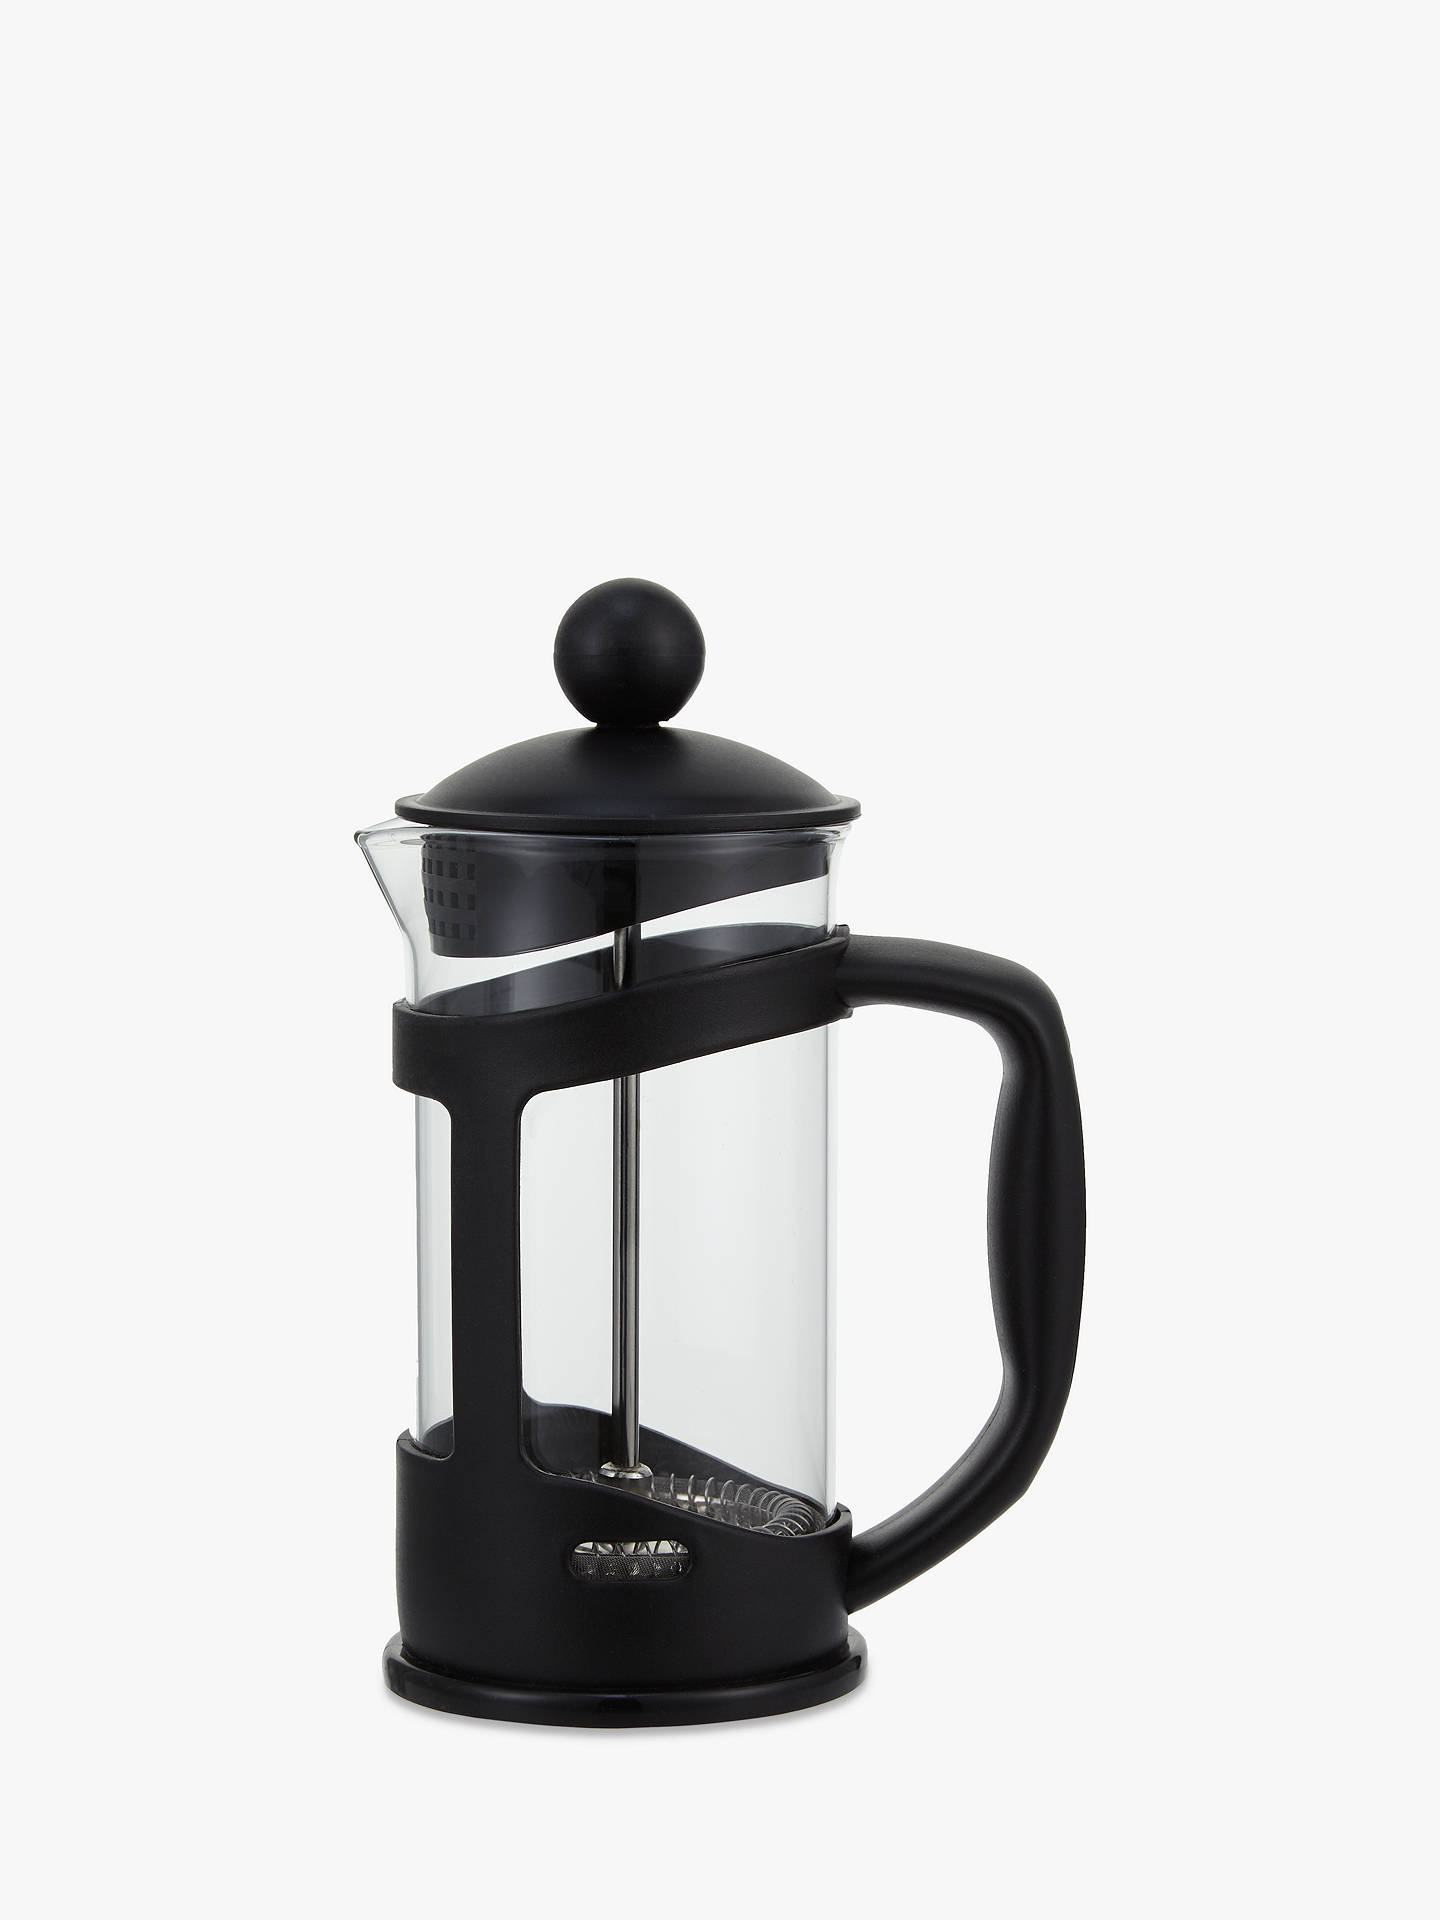 BuyJohn Lewis & Partners The Basics Cafetiere, 3 Cup Online at johnlewis.com